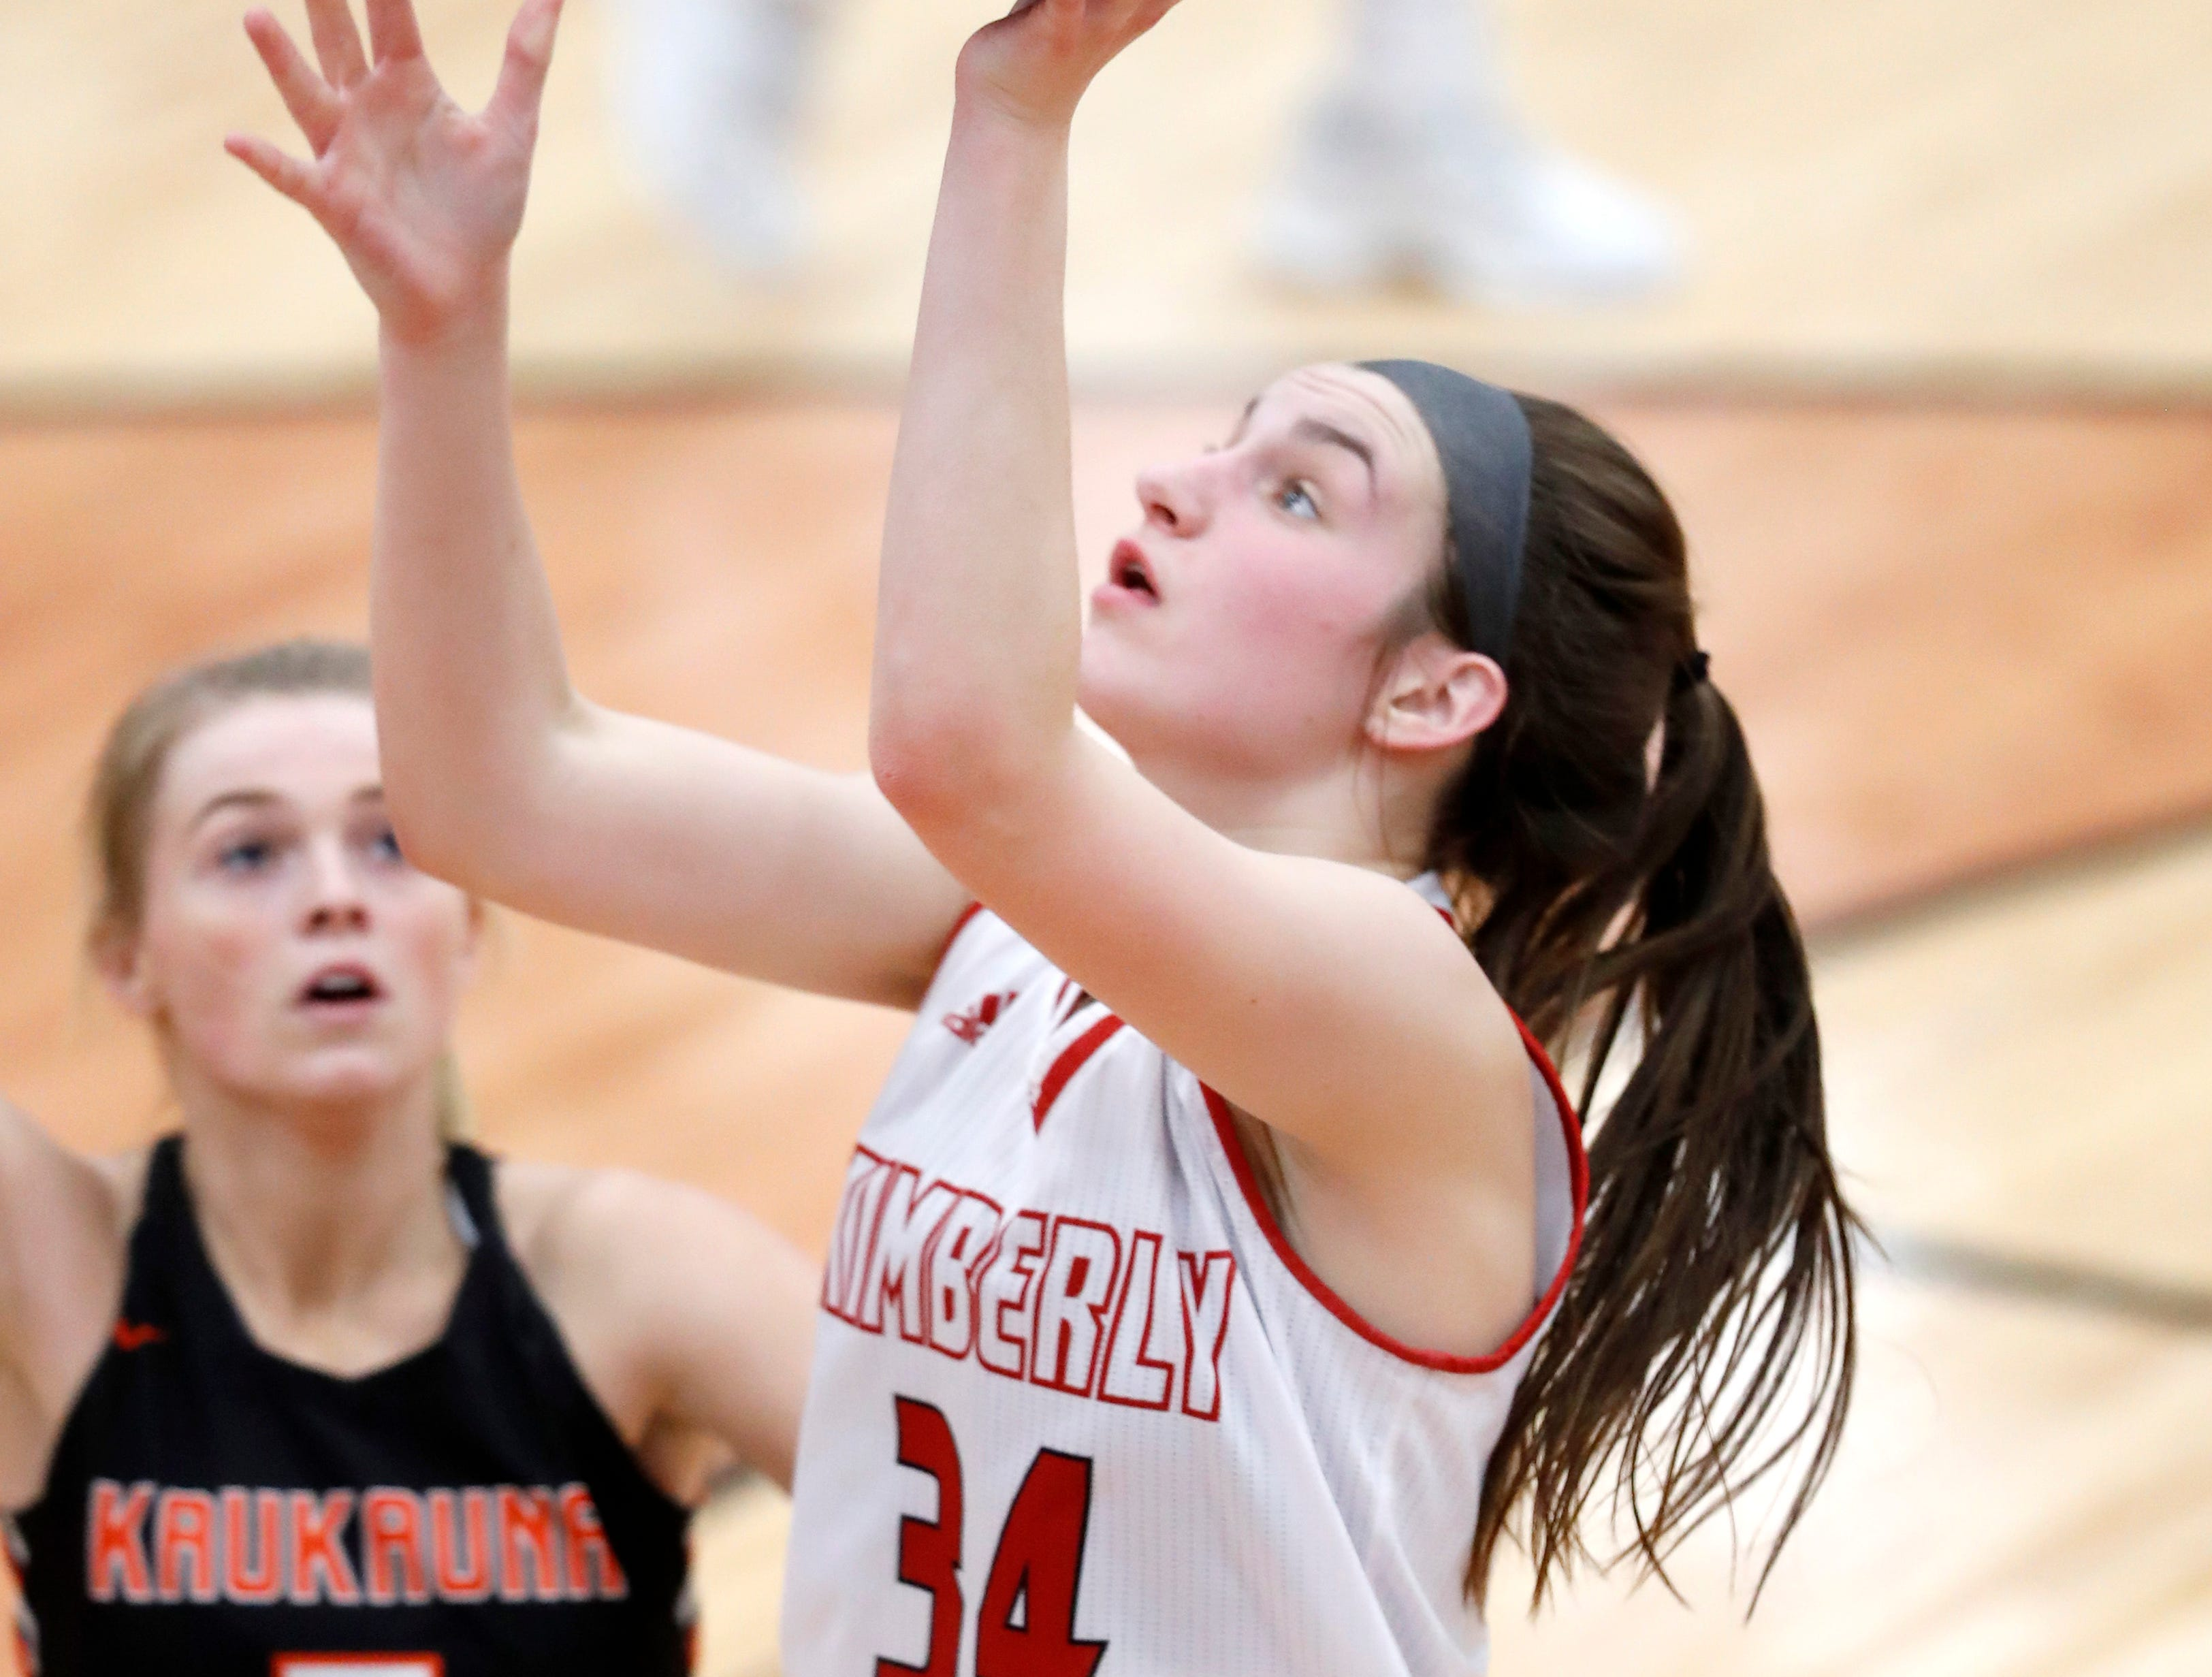 Kimberly High School's Maddy Schreiber goes for a layup against Kaukauna High School Friday, Dec. 7, 2018, in Kimberly, Wis.